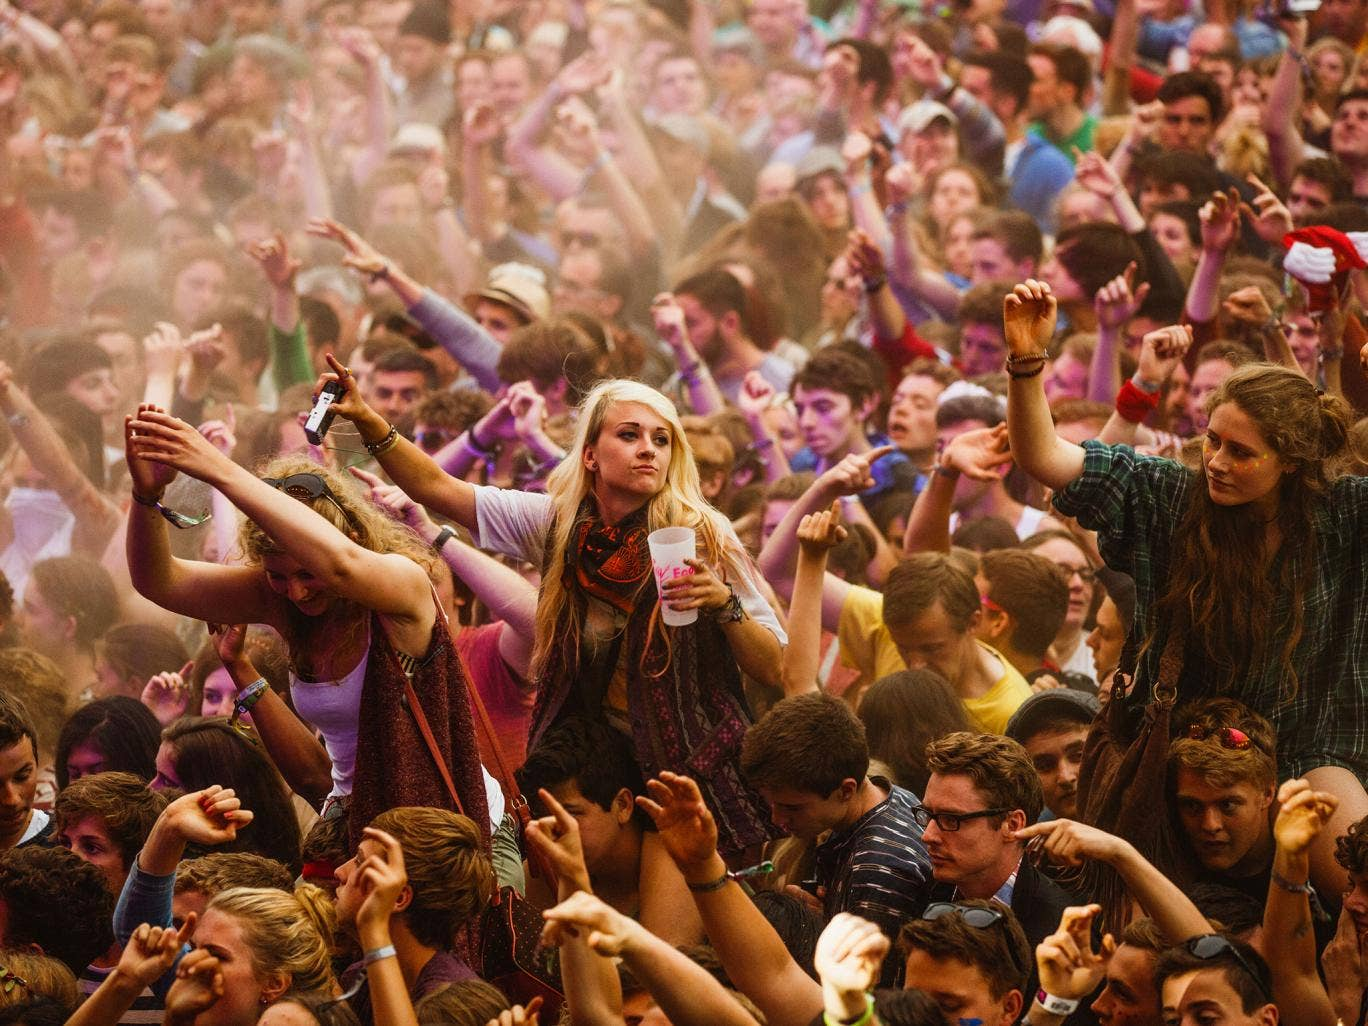 While the crowds are a fairly even split, the new study has found that their is a major gender imbalance on festival stages